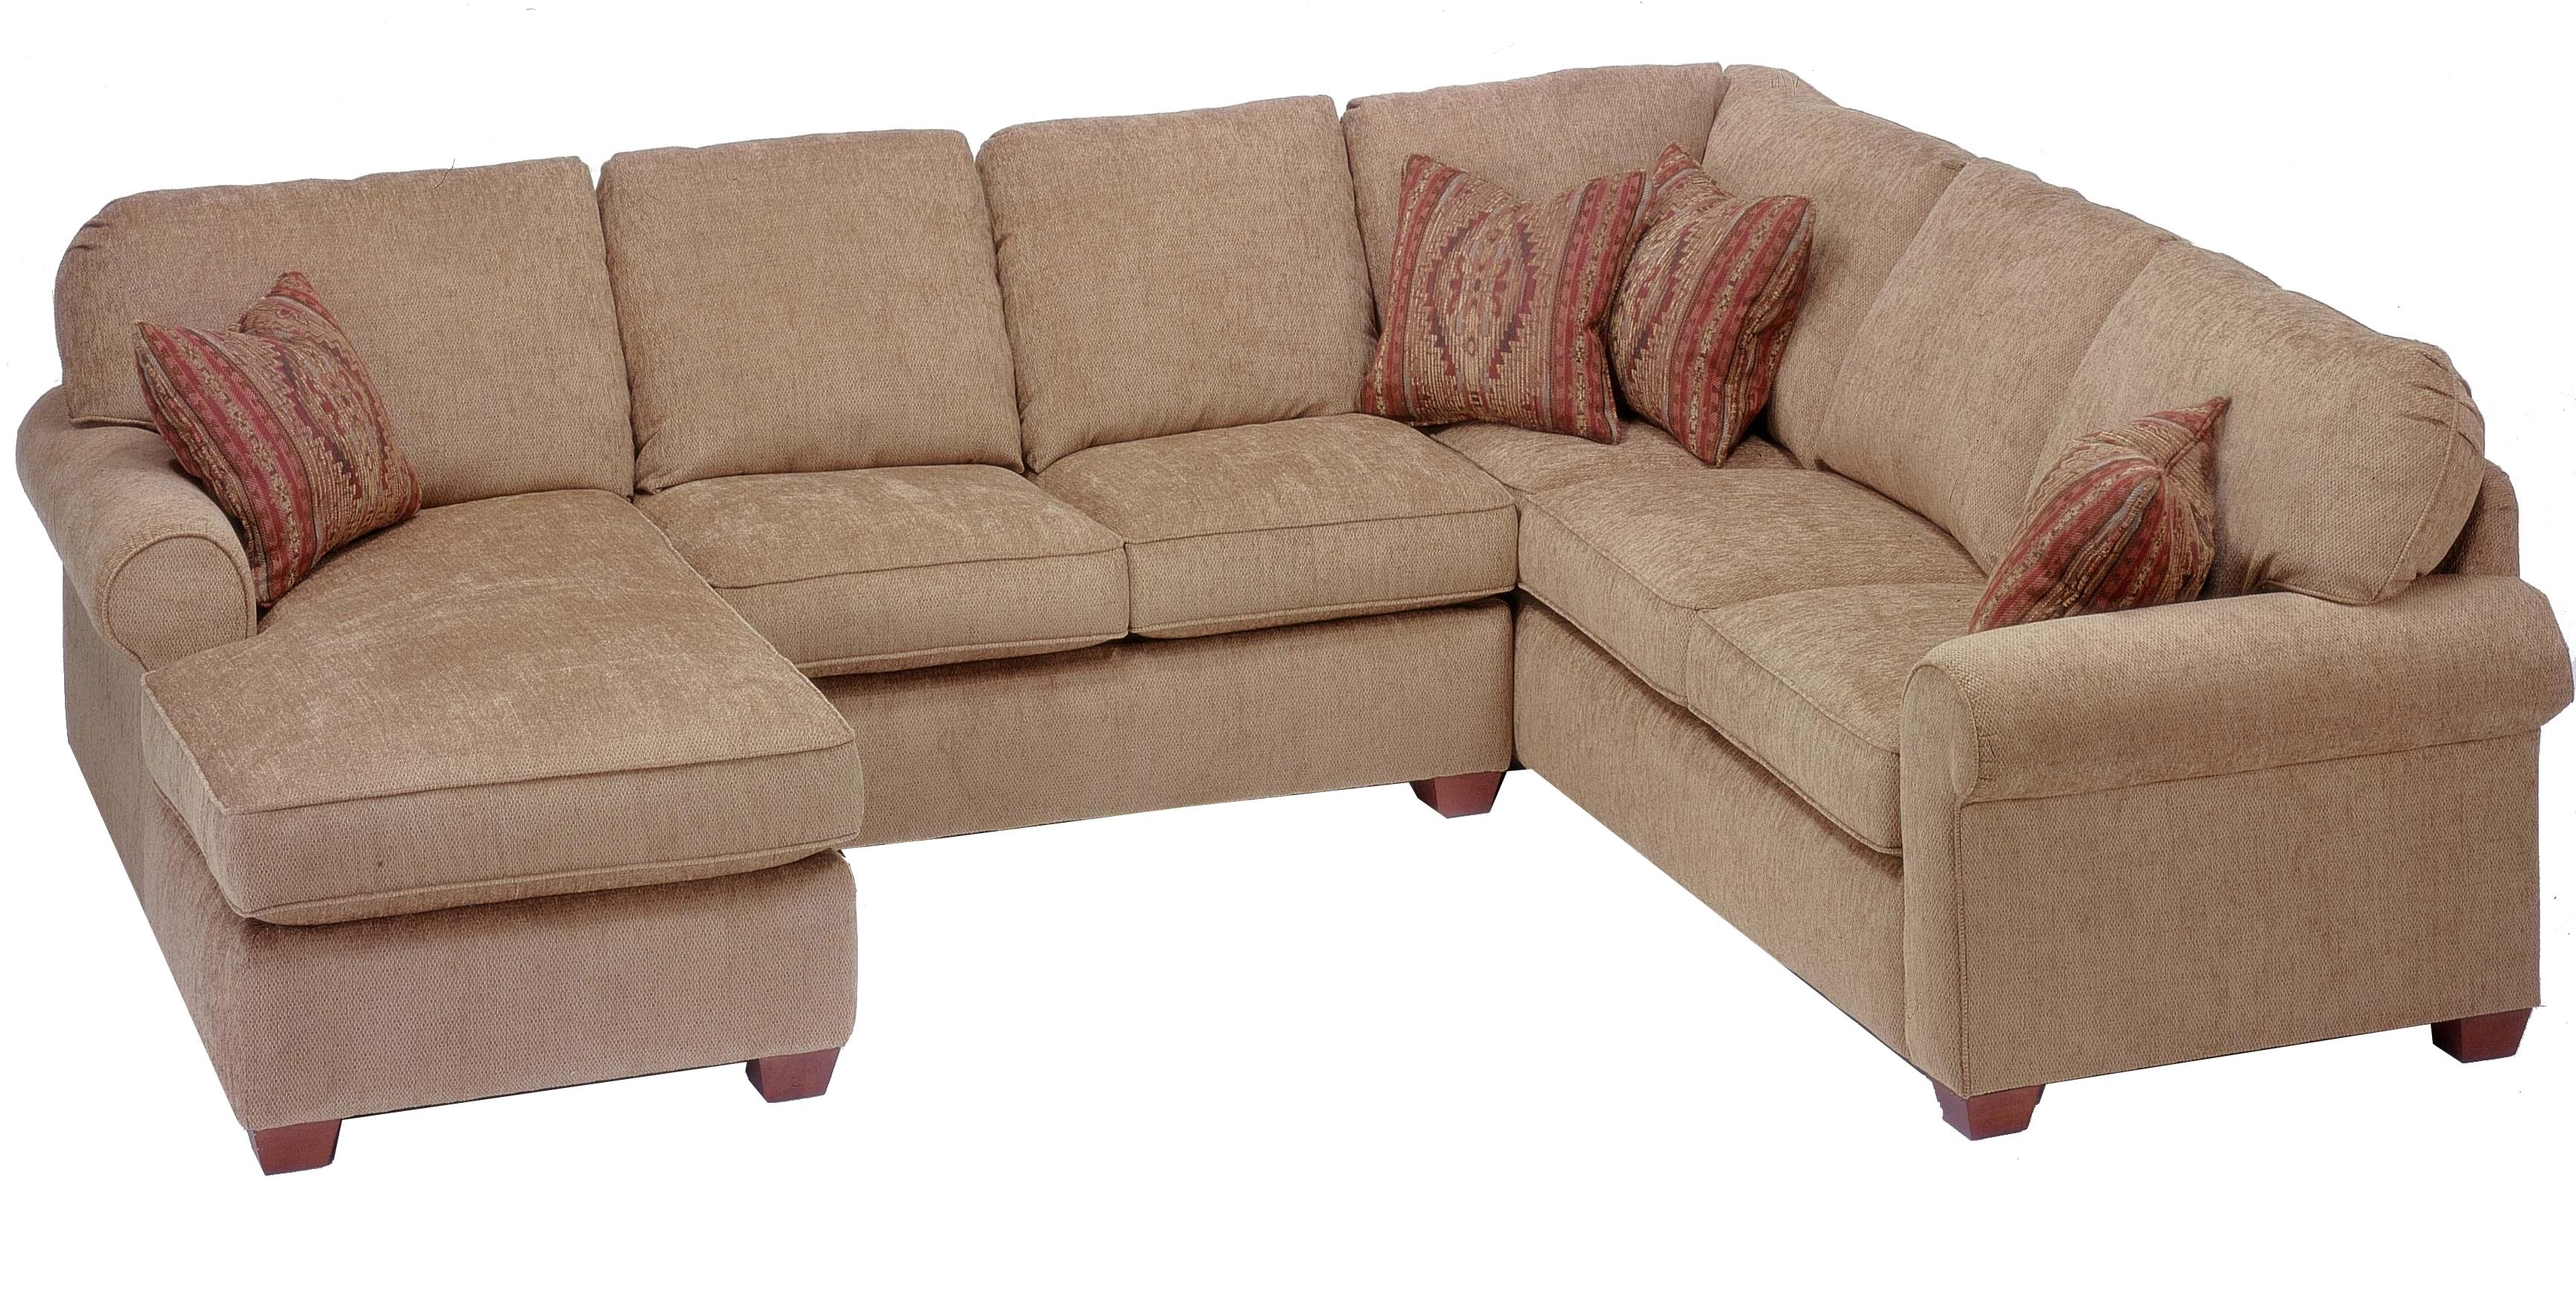 Flexsteel Thornton 3 Piece Sectional With Chaise - Ahfa - Sofa inside Norfolk Chocolate 3 Piece Sectionals With Raf Chaise (Image 12 of 30)